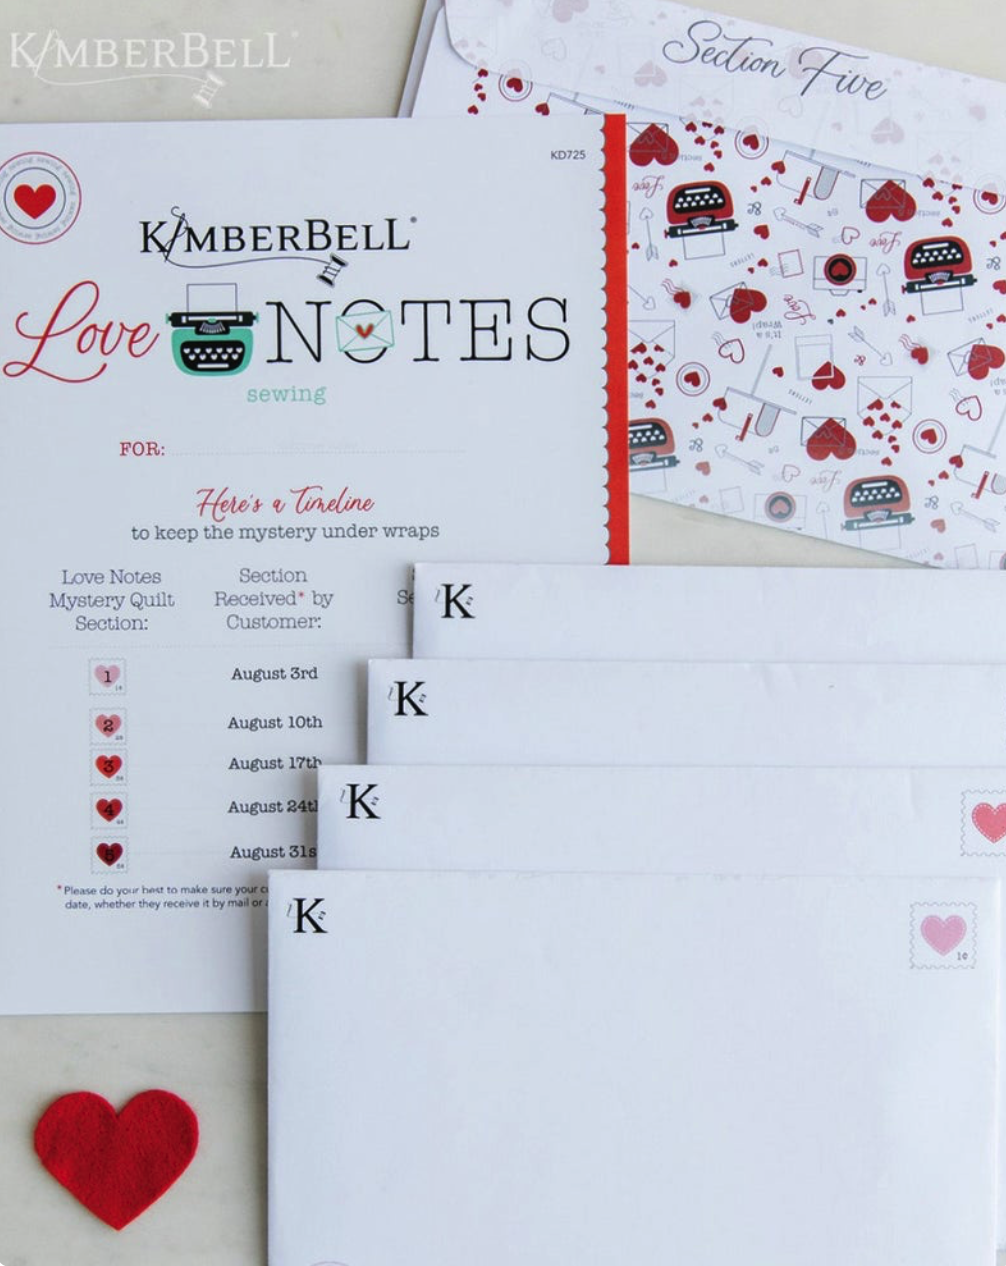 Kimberbell Love Notes Embroidery CD